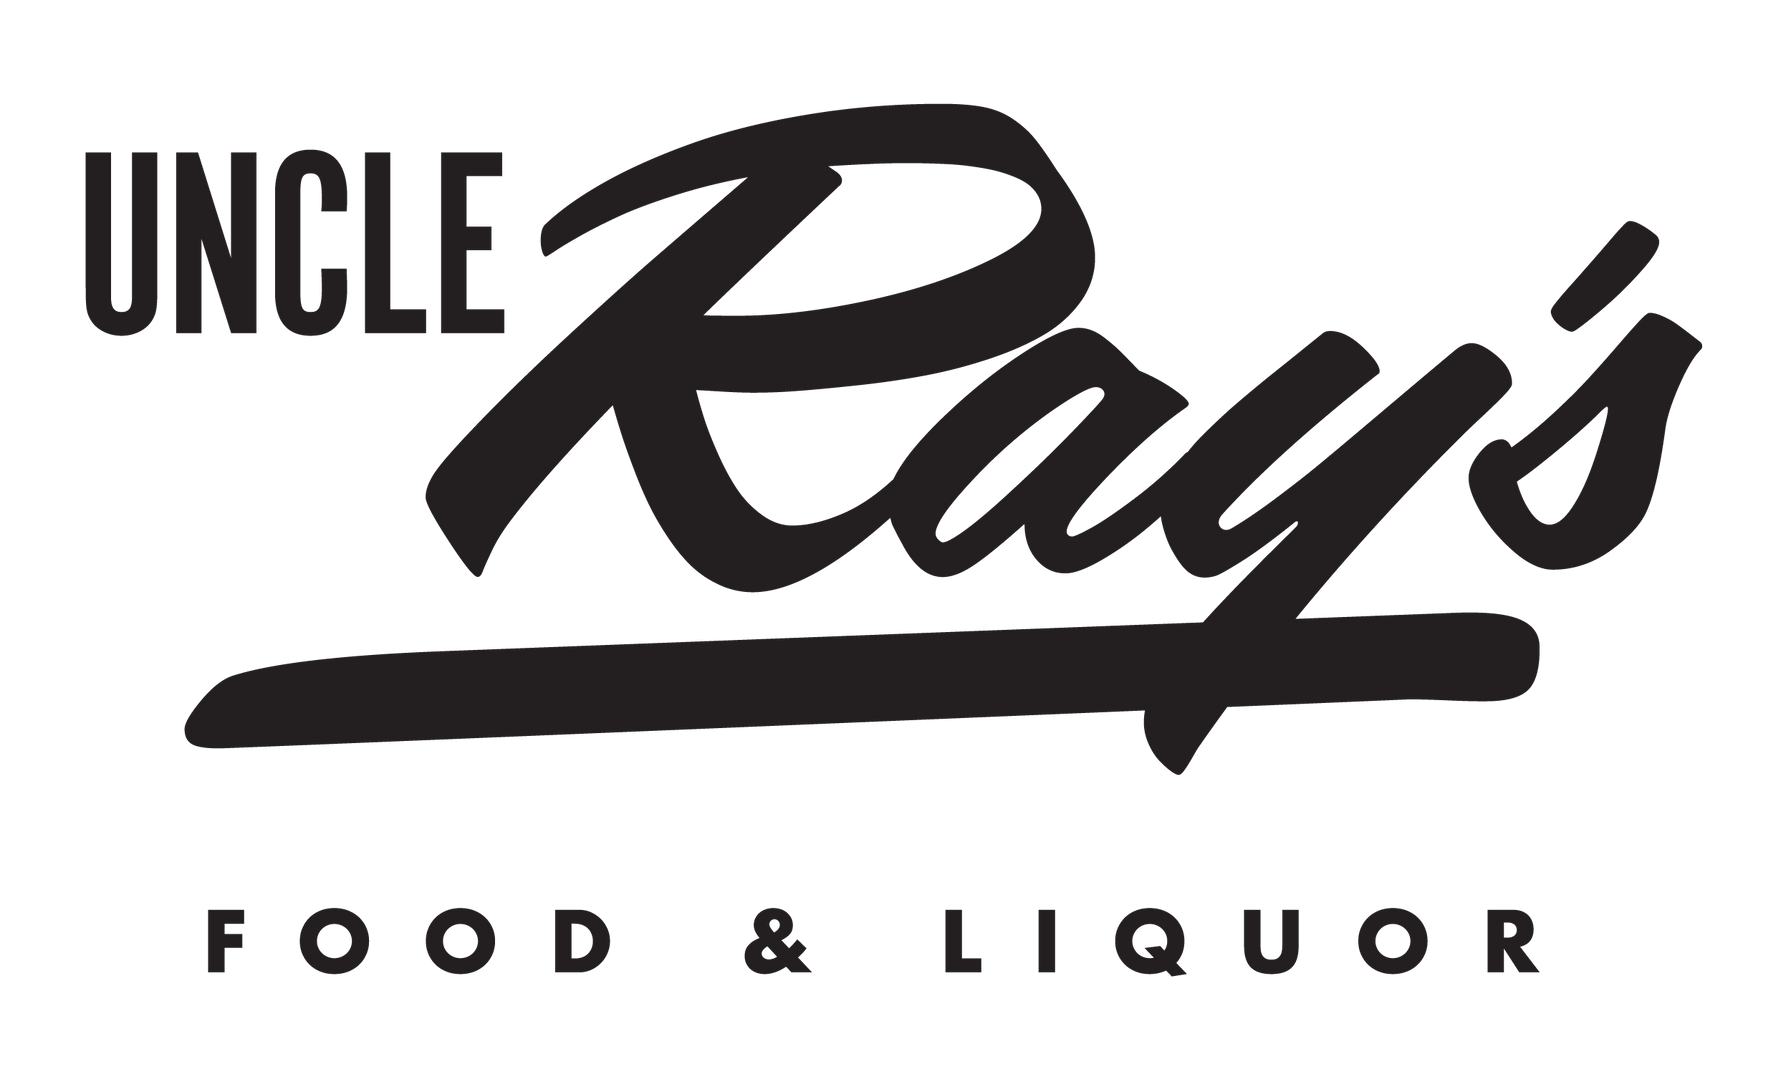 uncle rays logo